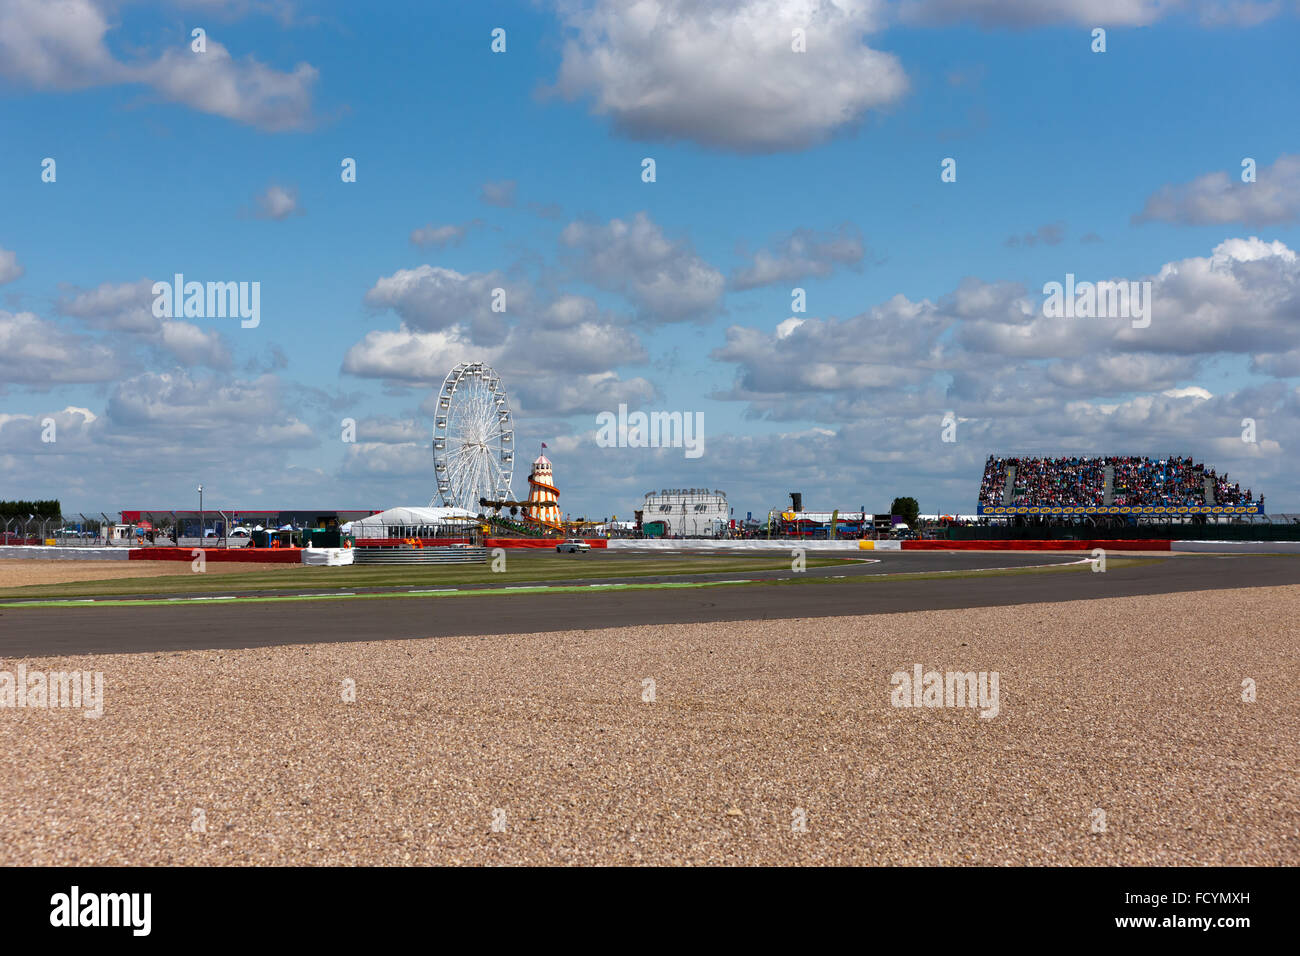 Wide angle view of 'The Loop', at the Silverstone Motor Racing Circuit, During the Silverstone Classic 2015, - Stock Image